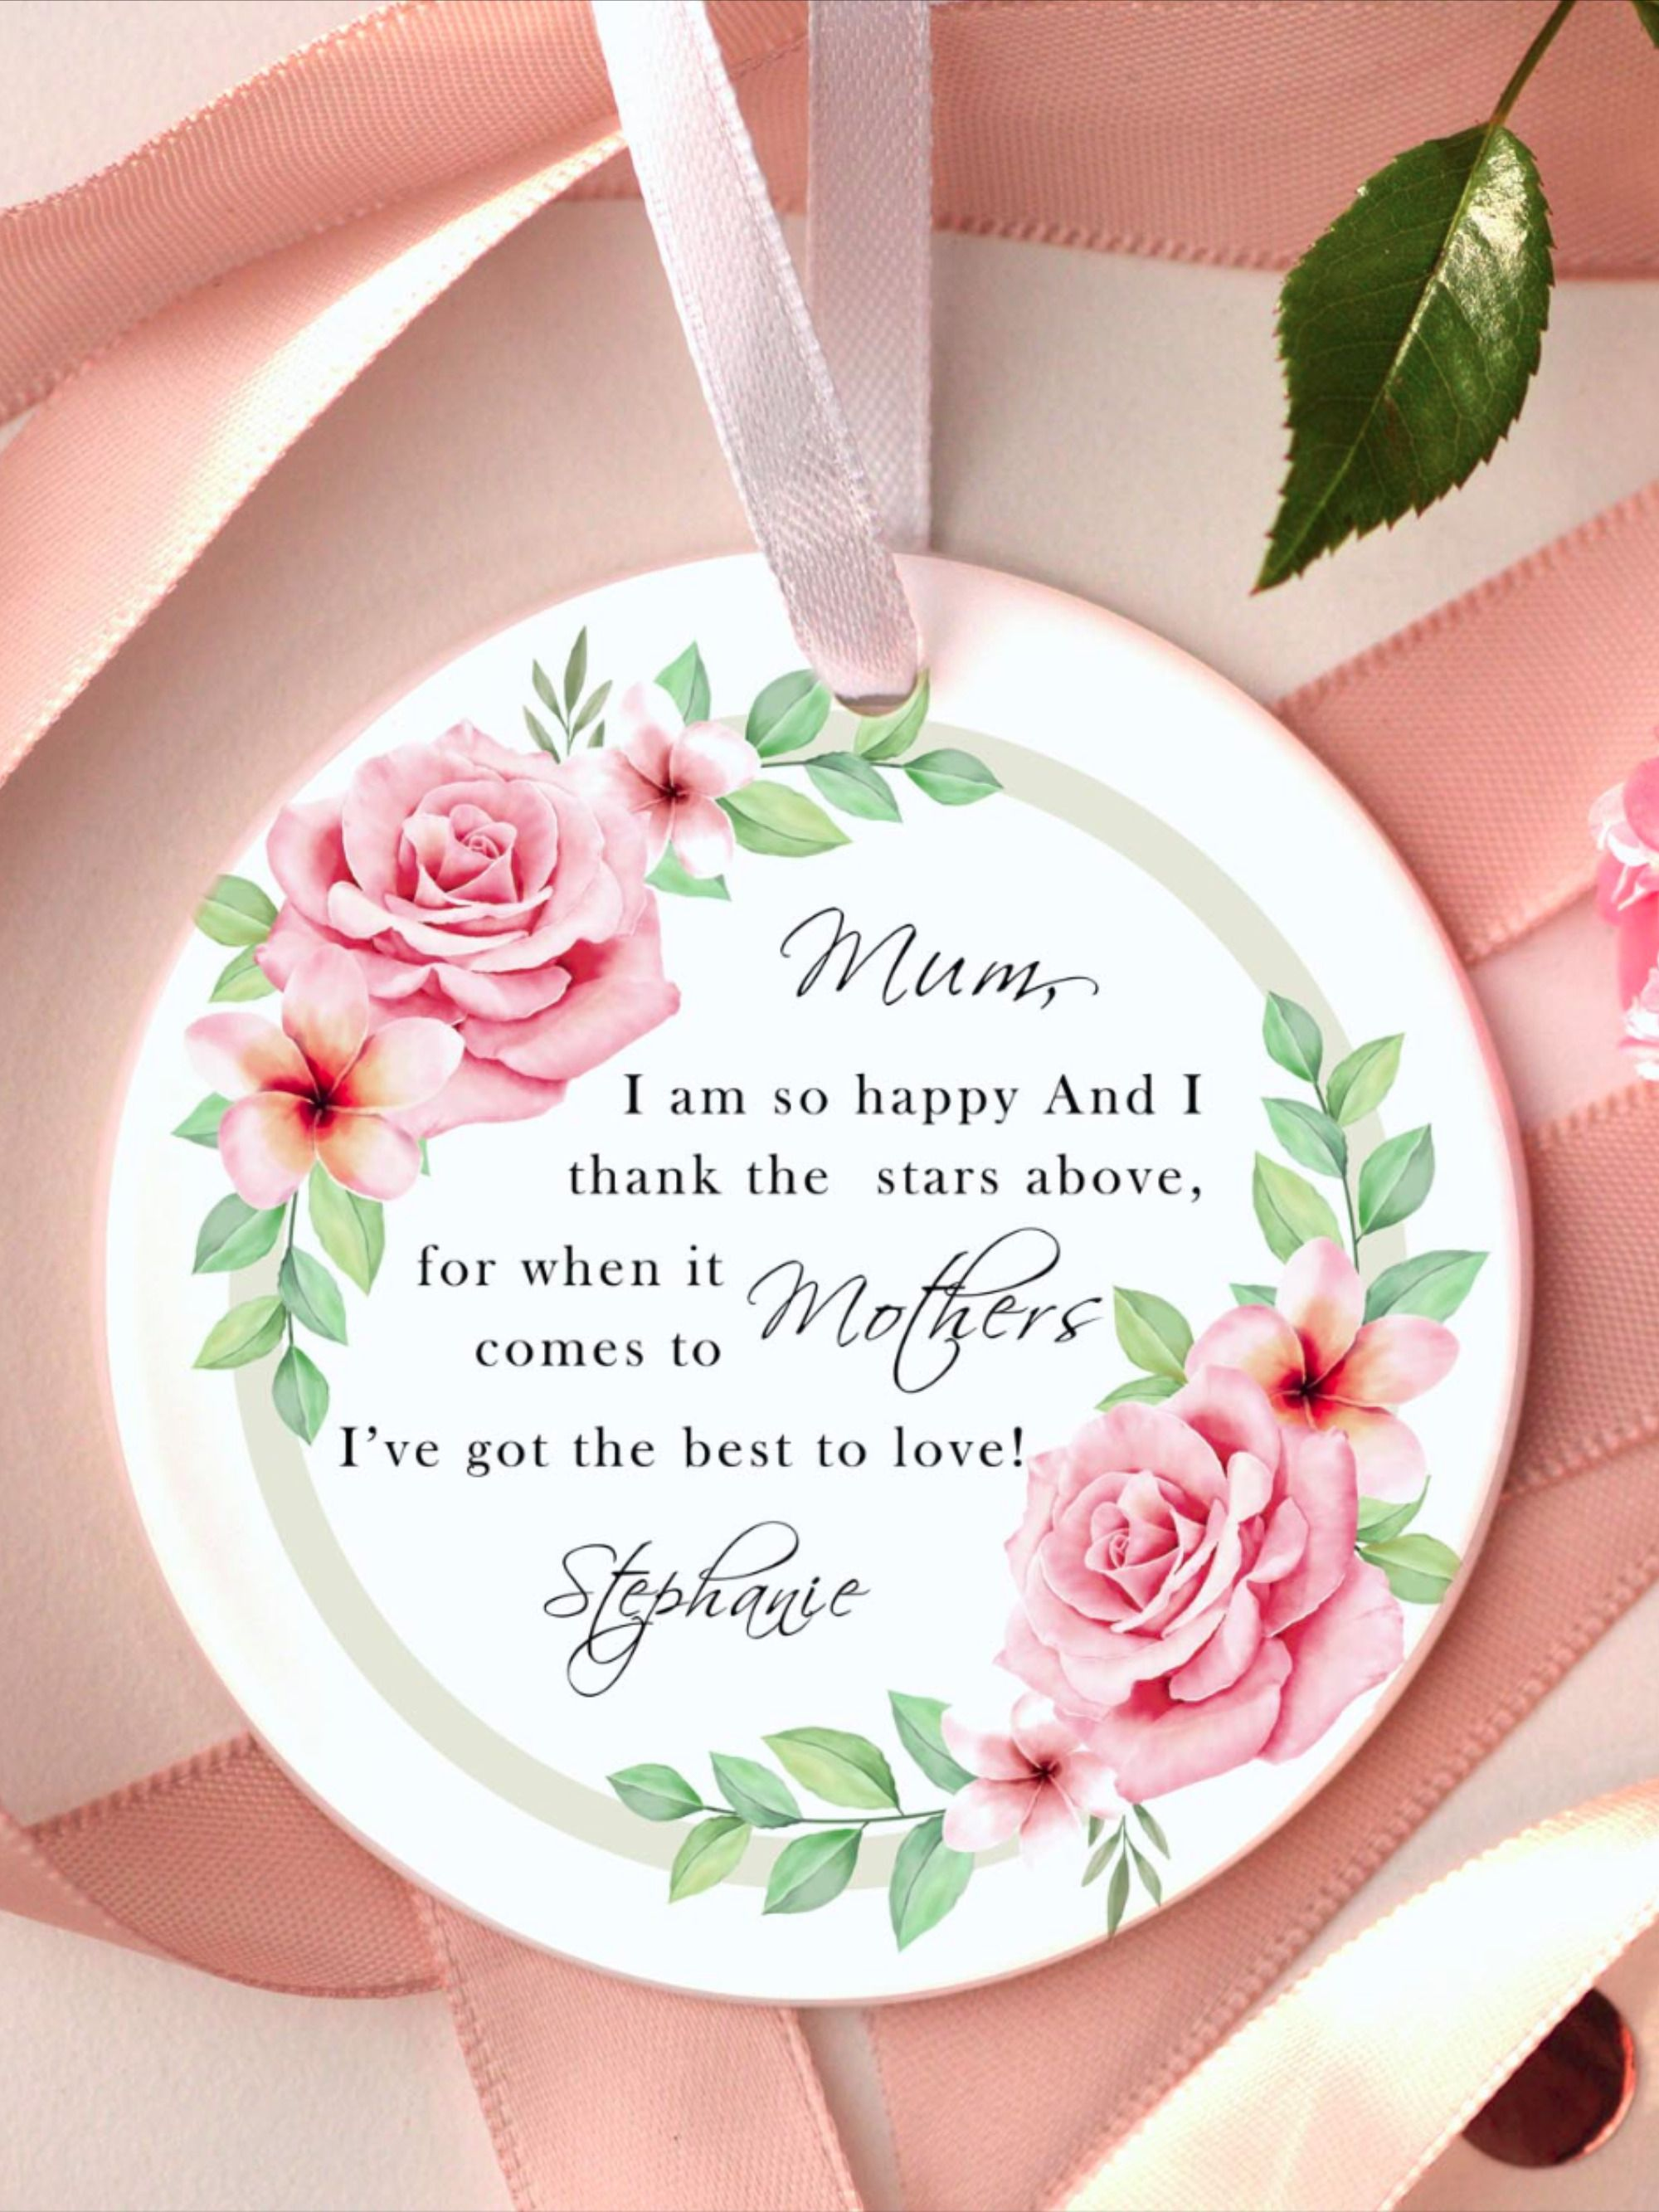 Happy Mothers Day From Daughter Personalized Mothers Day Gift From Son Happy Birthday Mom Gifts For Mom From Daughter Mom Birthday In 2020 Happy Mothers Day Mother Day Gifts Mothers Day Special